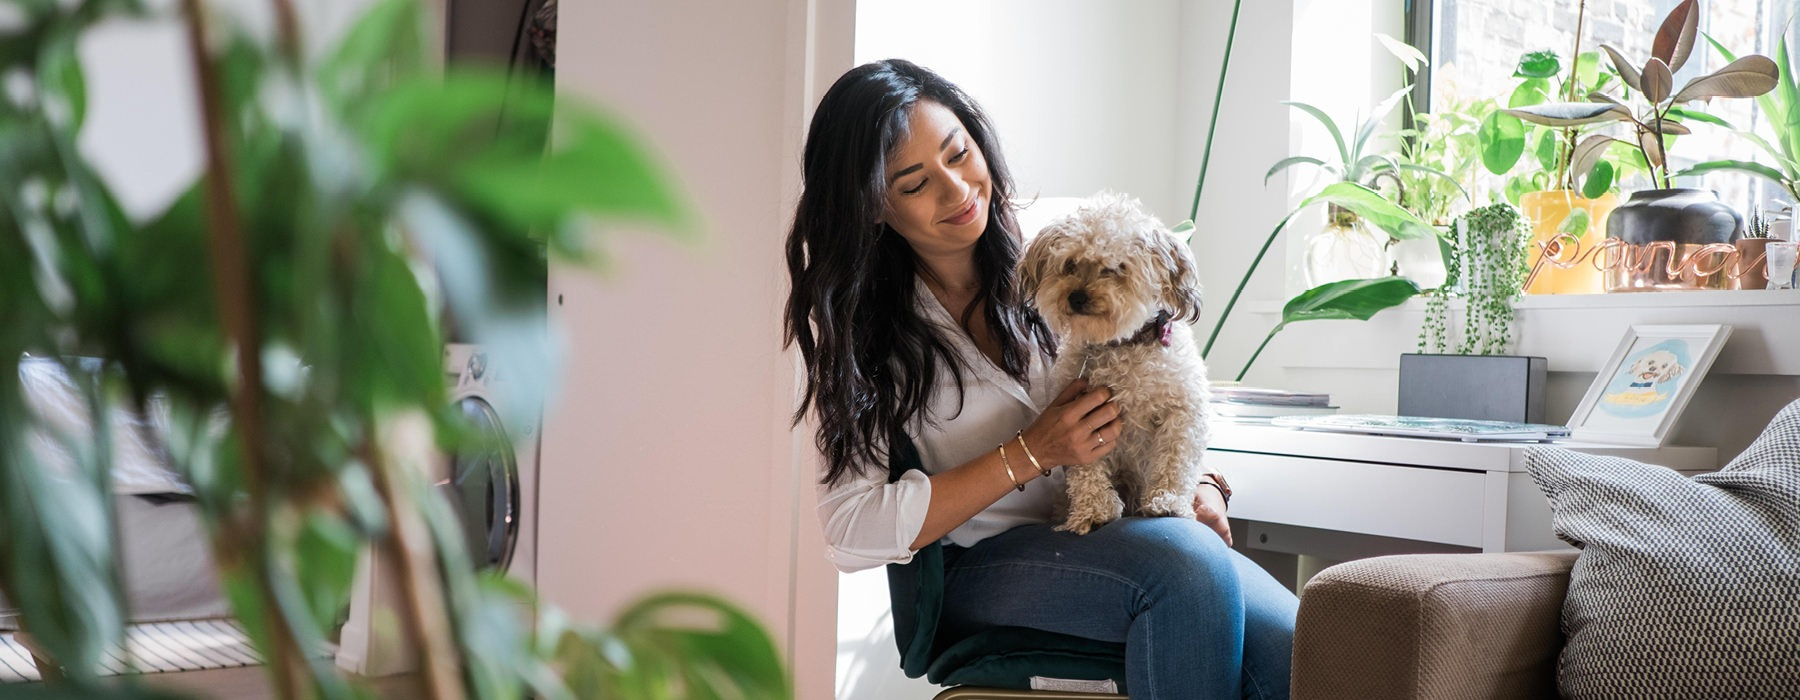 woman at her apartment work area smiling at dog sitting in her lap